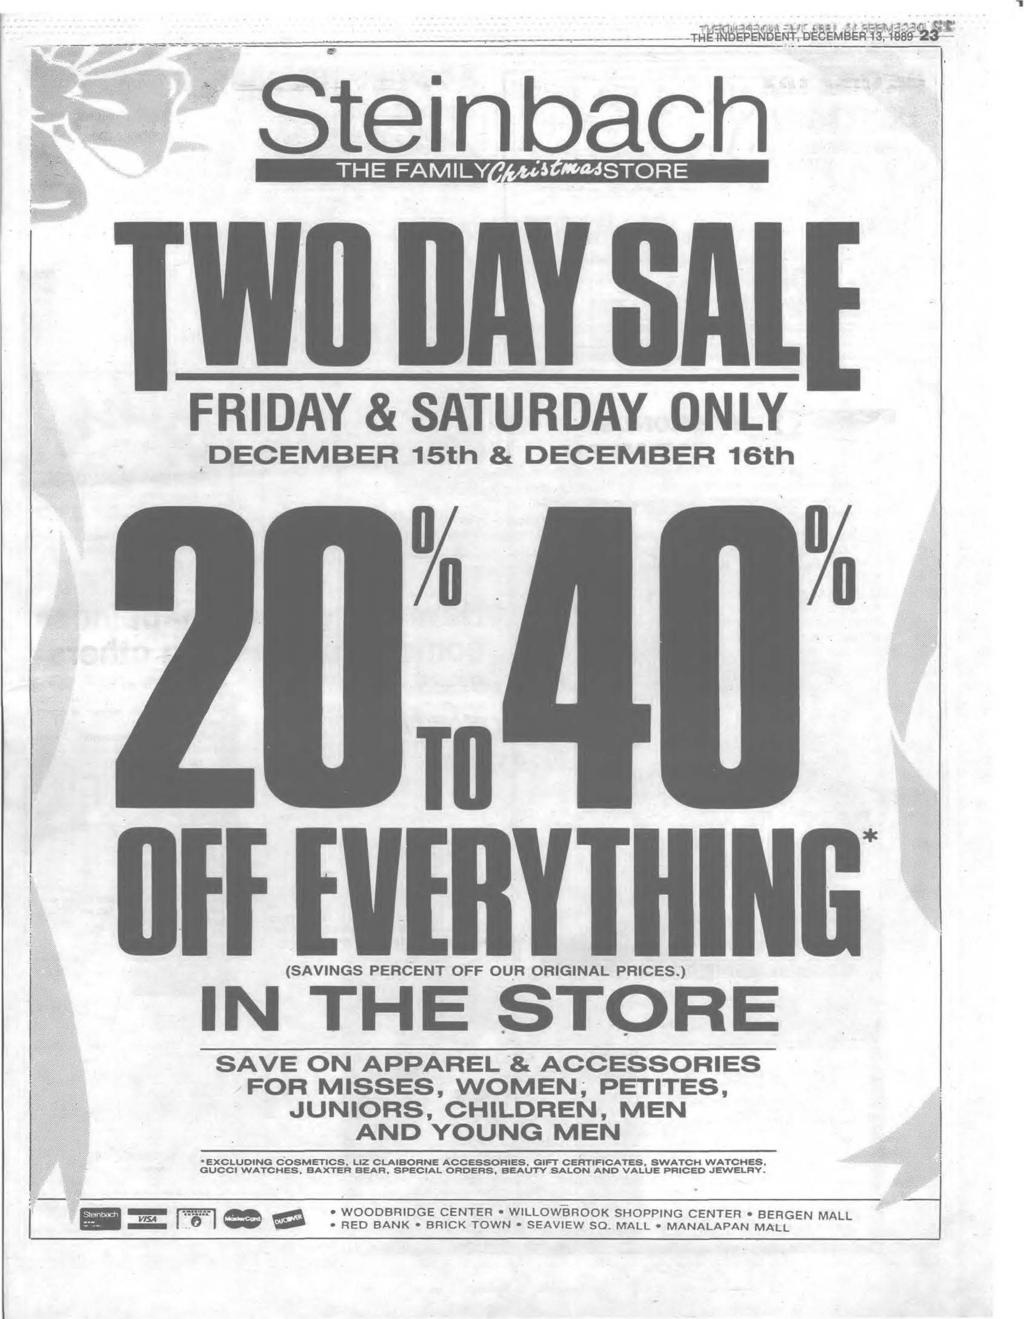 T W D DAY S f llf FR ID A Y & SATURDAY ONLY D E C E M B E R 15th & D E C E M B E R 16th i I. O ff EVERVTHKG (SAVINGS PERCENT OFF OUR ORIGINAL PRICES.